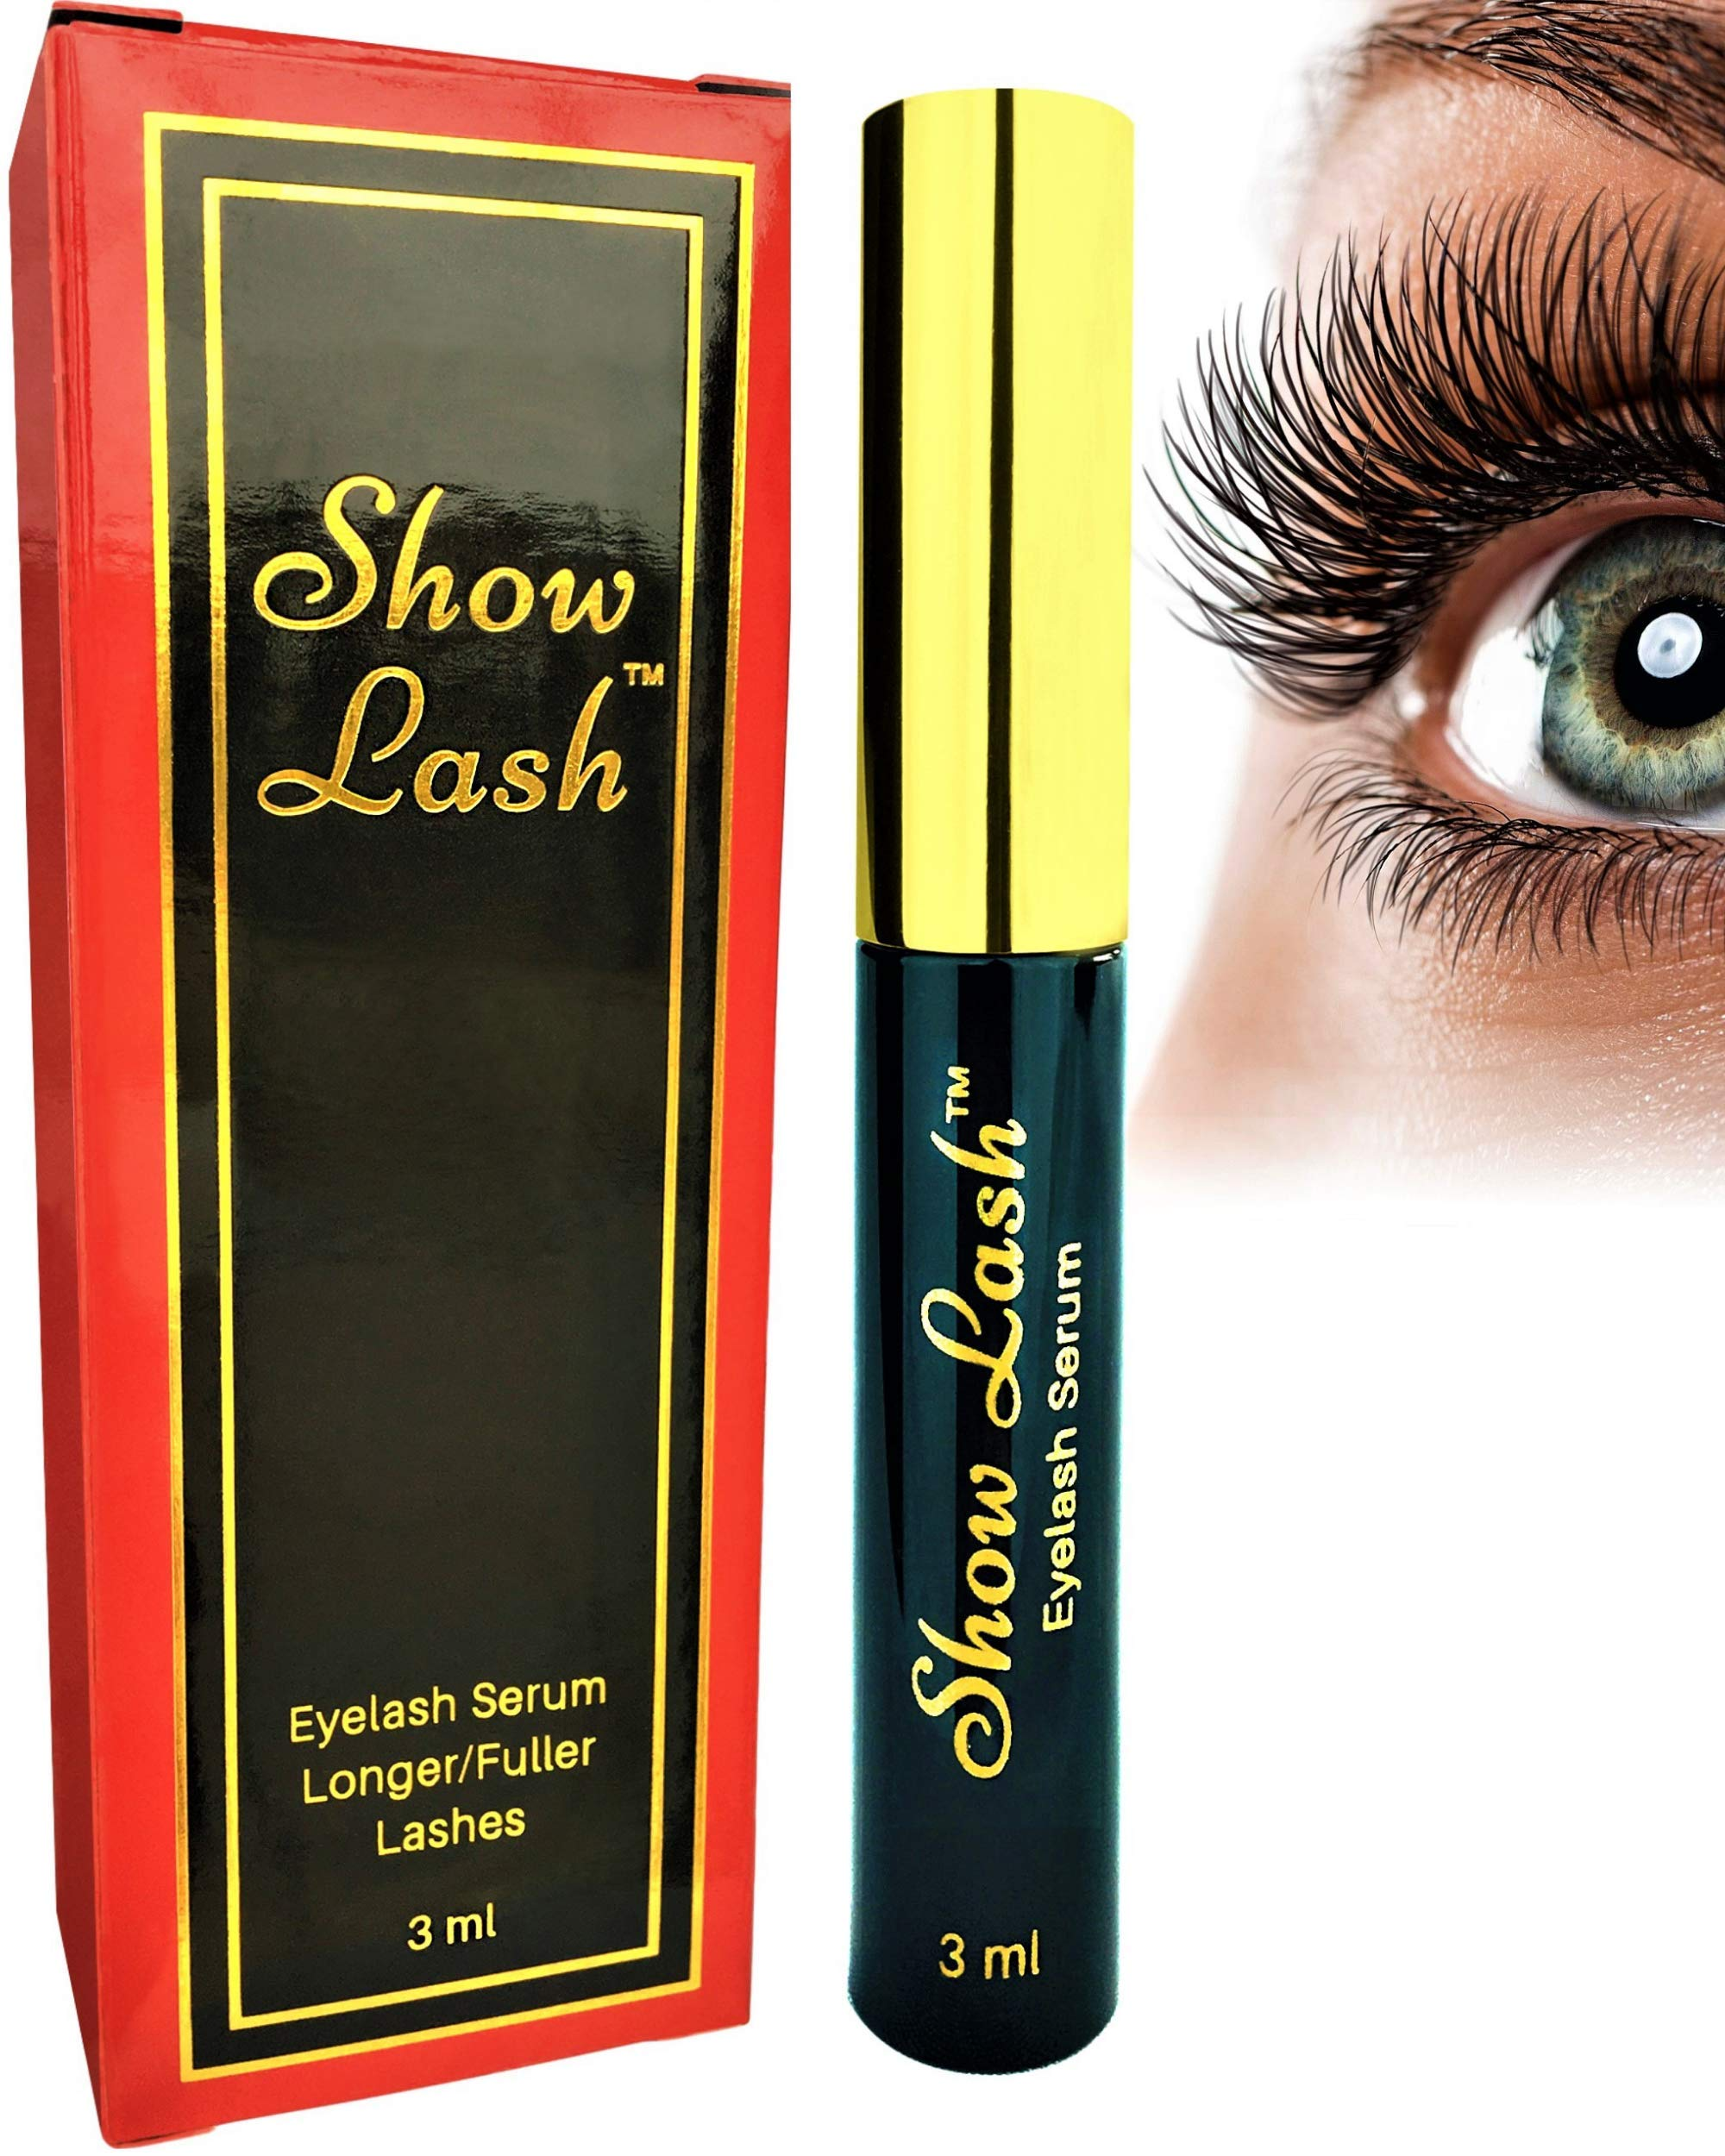 Show Lash - Premium Eyelash and Eyebrow Growth Enhancing Serum for Longer, Thicker, Gorgeous Lashes. The Most Powerful Lash Boosting Serum Without a Prescription. Clinically Proven. by LeVaye'